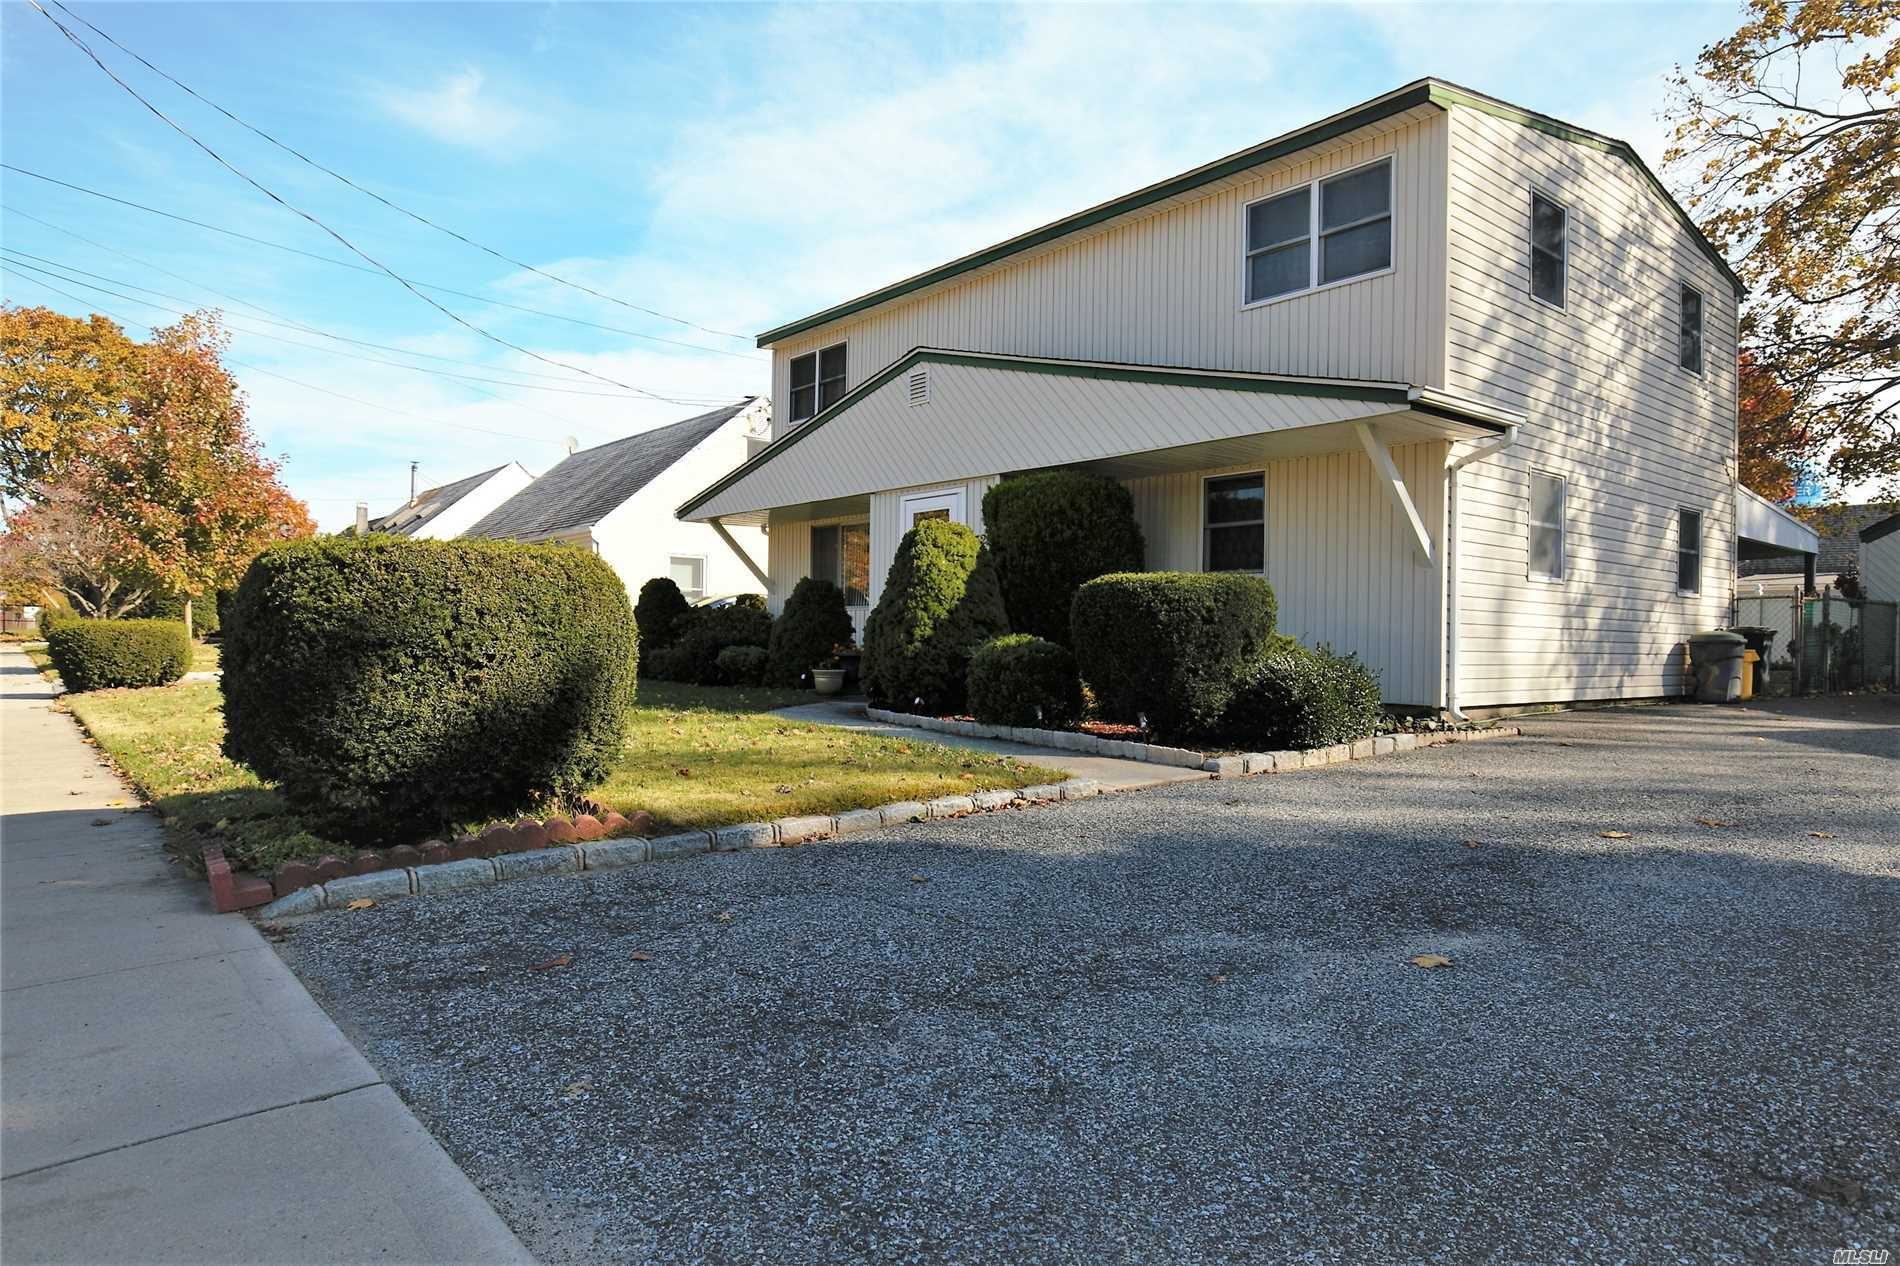 Too Much Of House For Money. Approx 1820 Sqft Livable Space , Extended Eat In Kitchen With Formal Huge Dinning Room Extention, Huge 4 Bedrooms And Potential For Big 5th Bedroom, 2 Full Bath , One Bath On Each Floor, Very Conveniently Located Close To Highways, Groceries, Shopping Etc. Approx 1 Mile To Lirr. One Year Young Roof, Gas Heat,  New Appliances , 200 Amp Electricity, Priced Right For A Quick Sale, Covered Patio, Wont Last ! A Must See House !